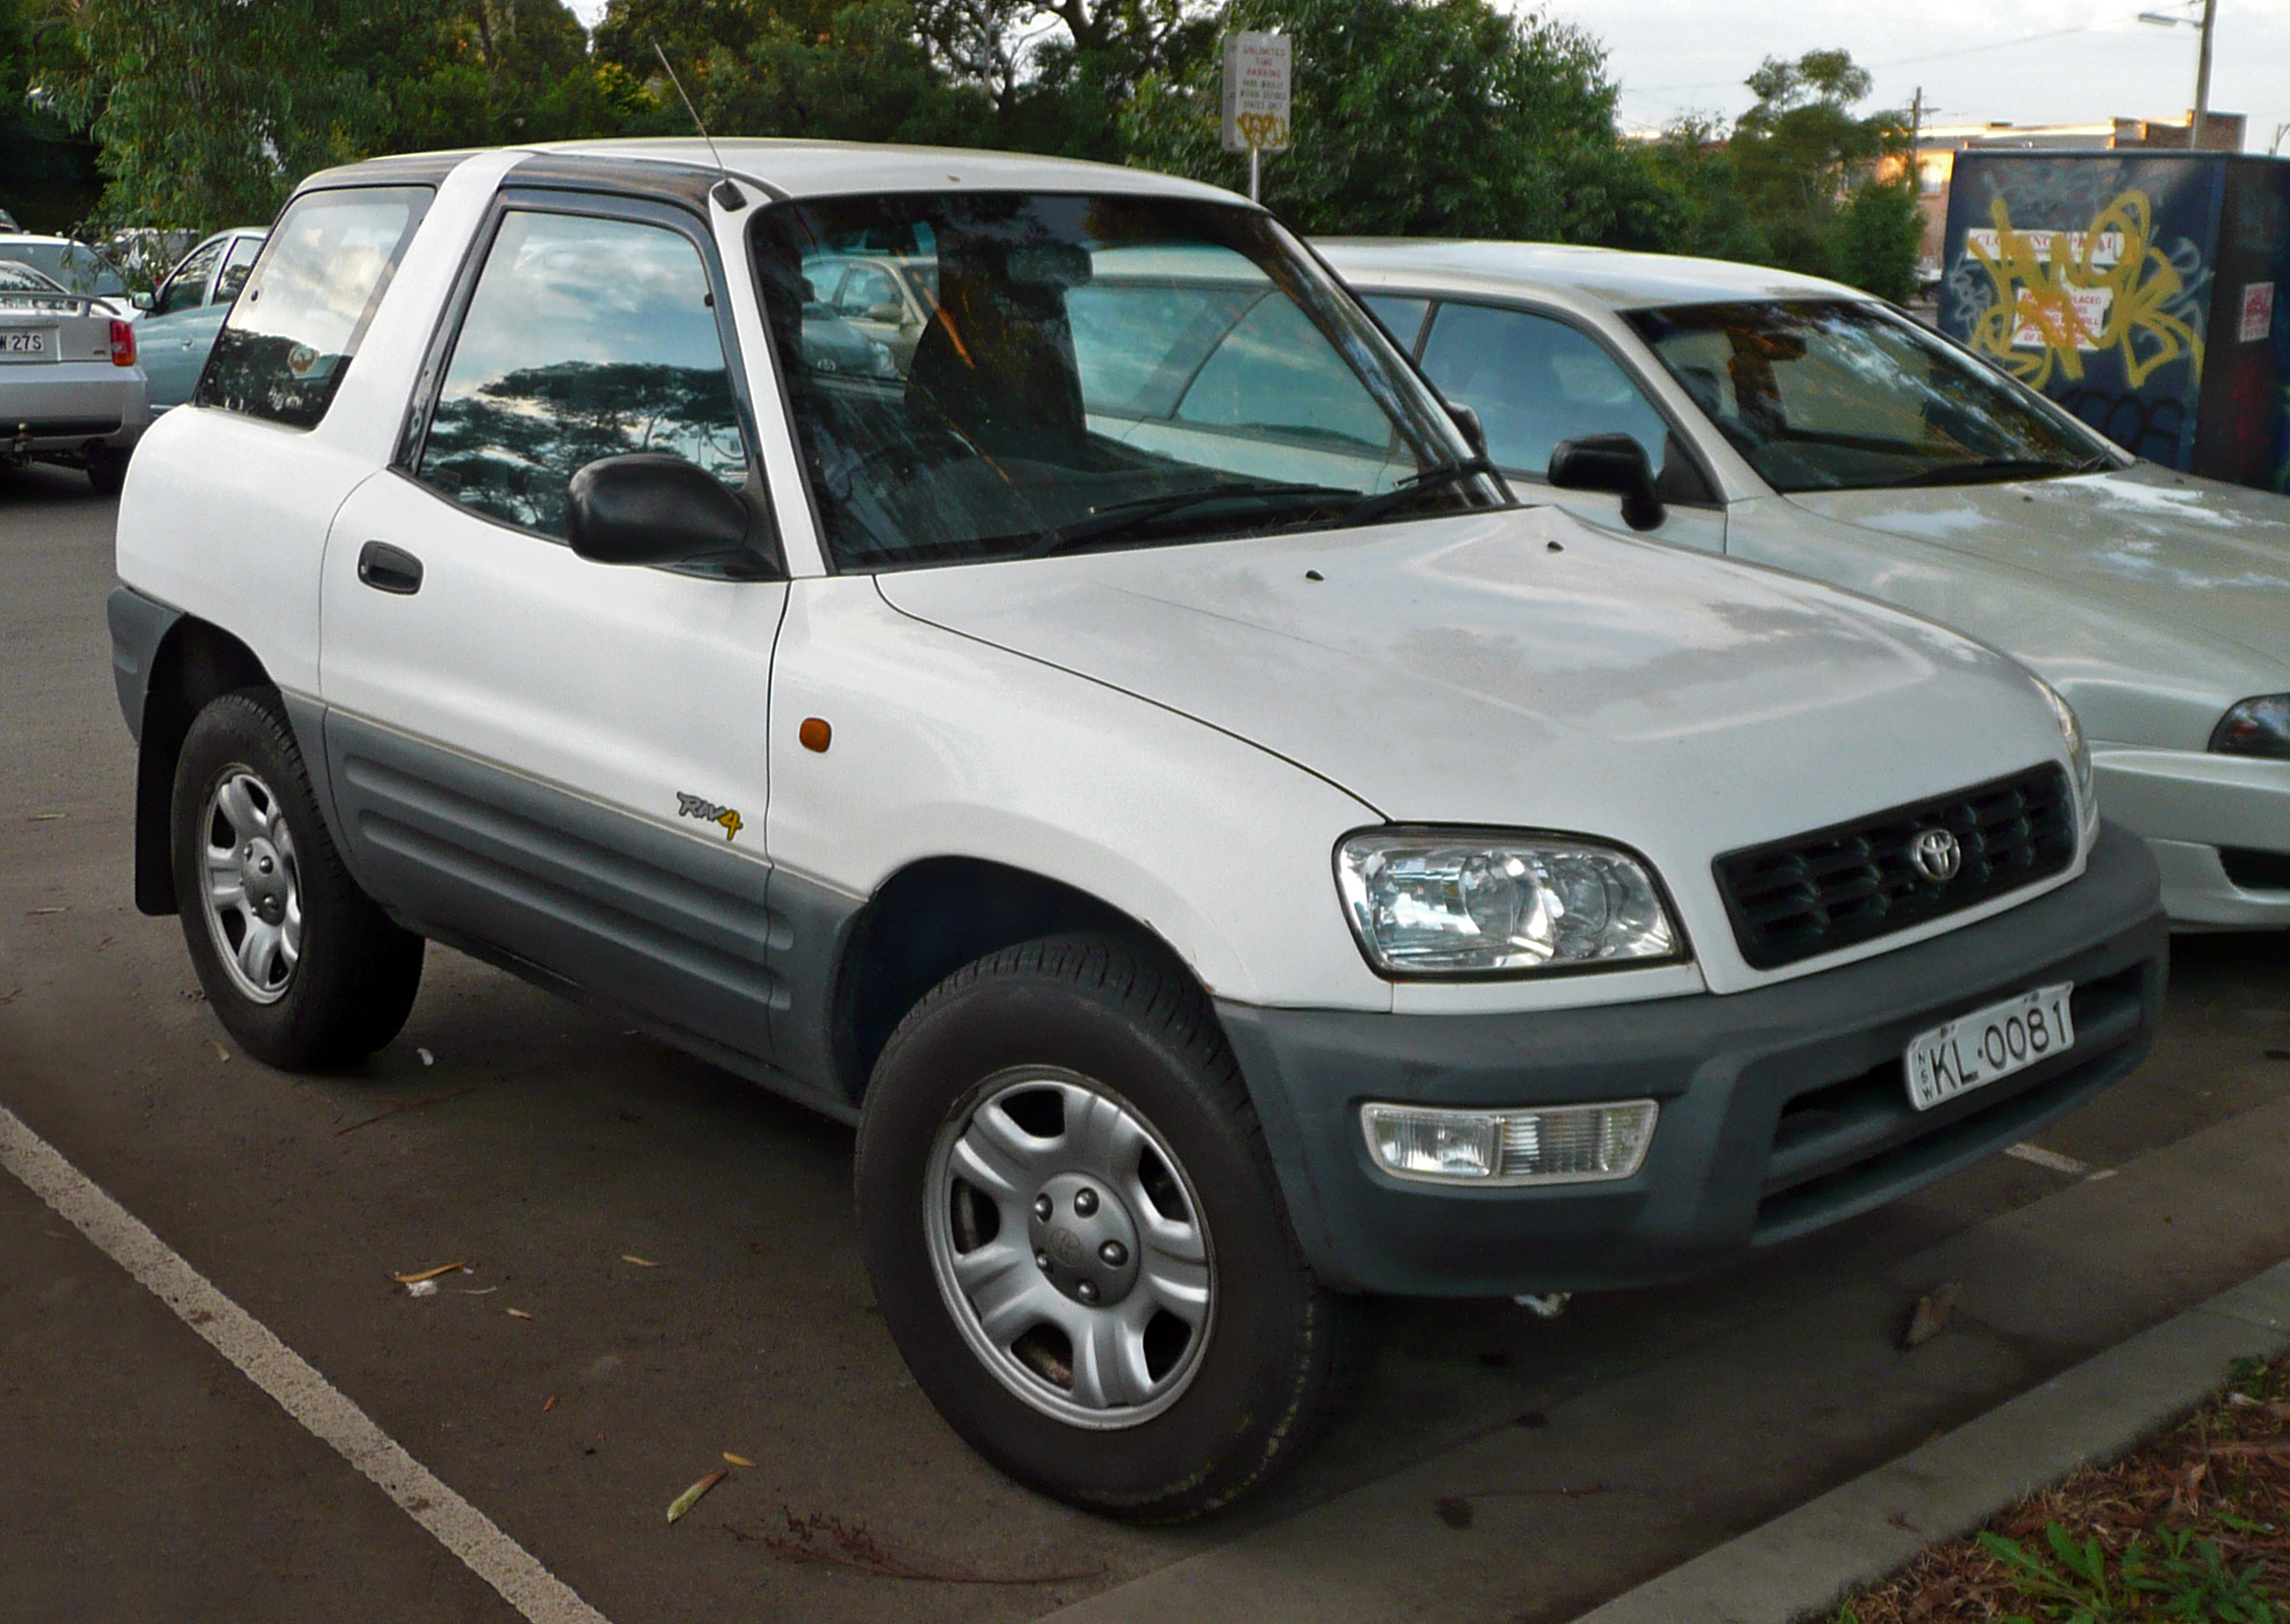 Toyota RAV4 2000 photo - 2